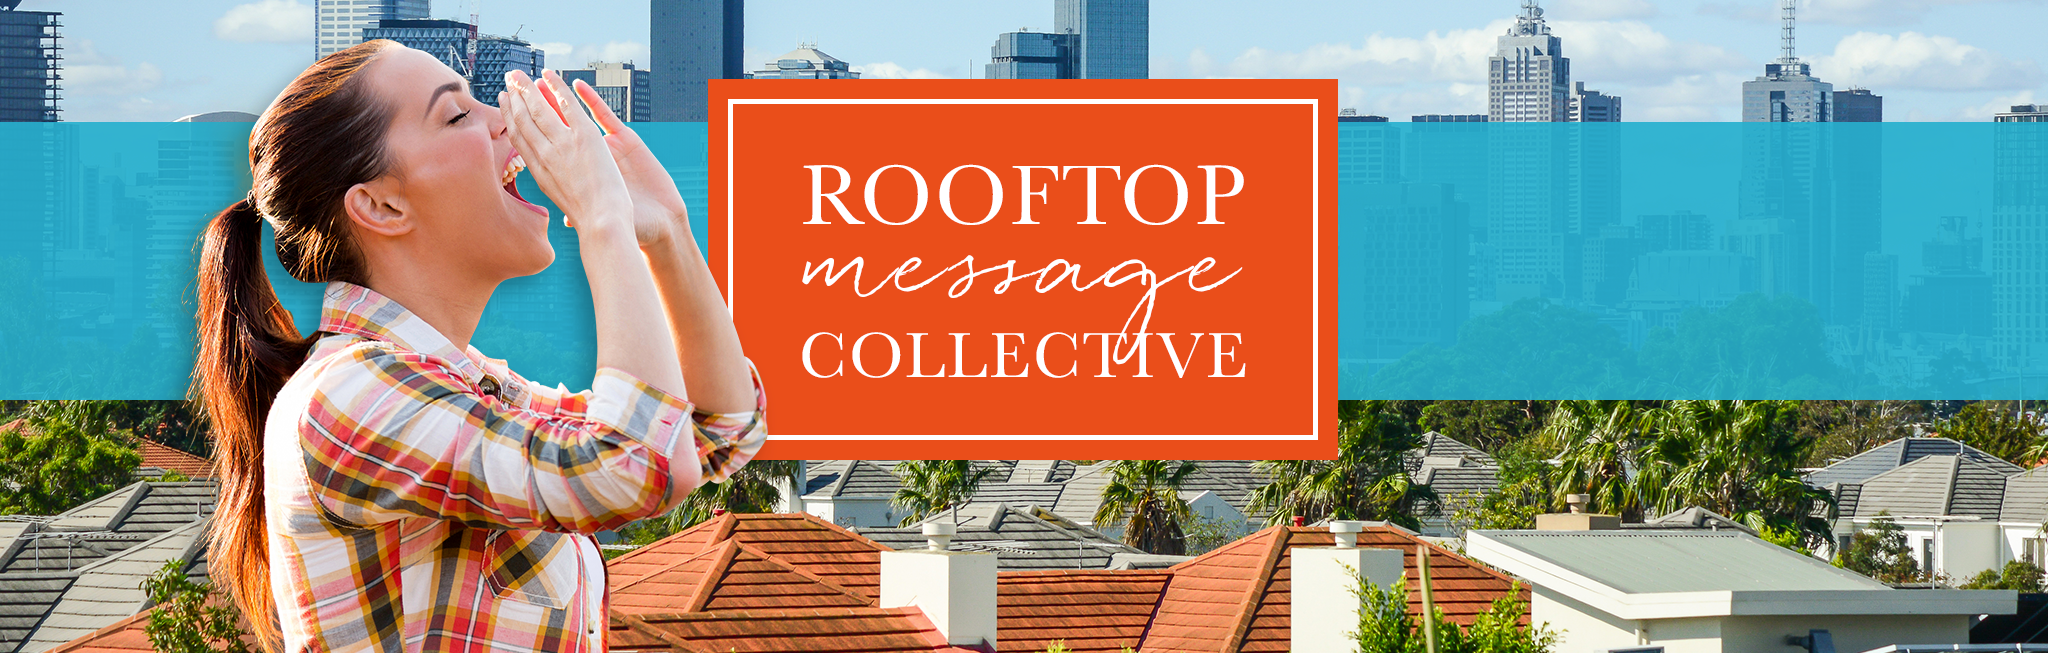 The Rooftop Message Collective